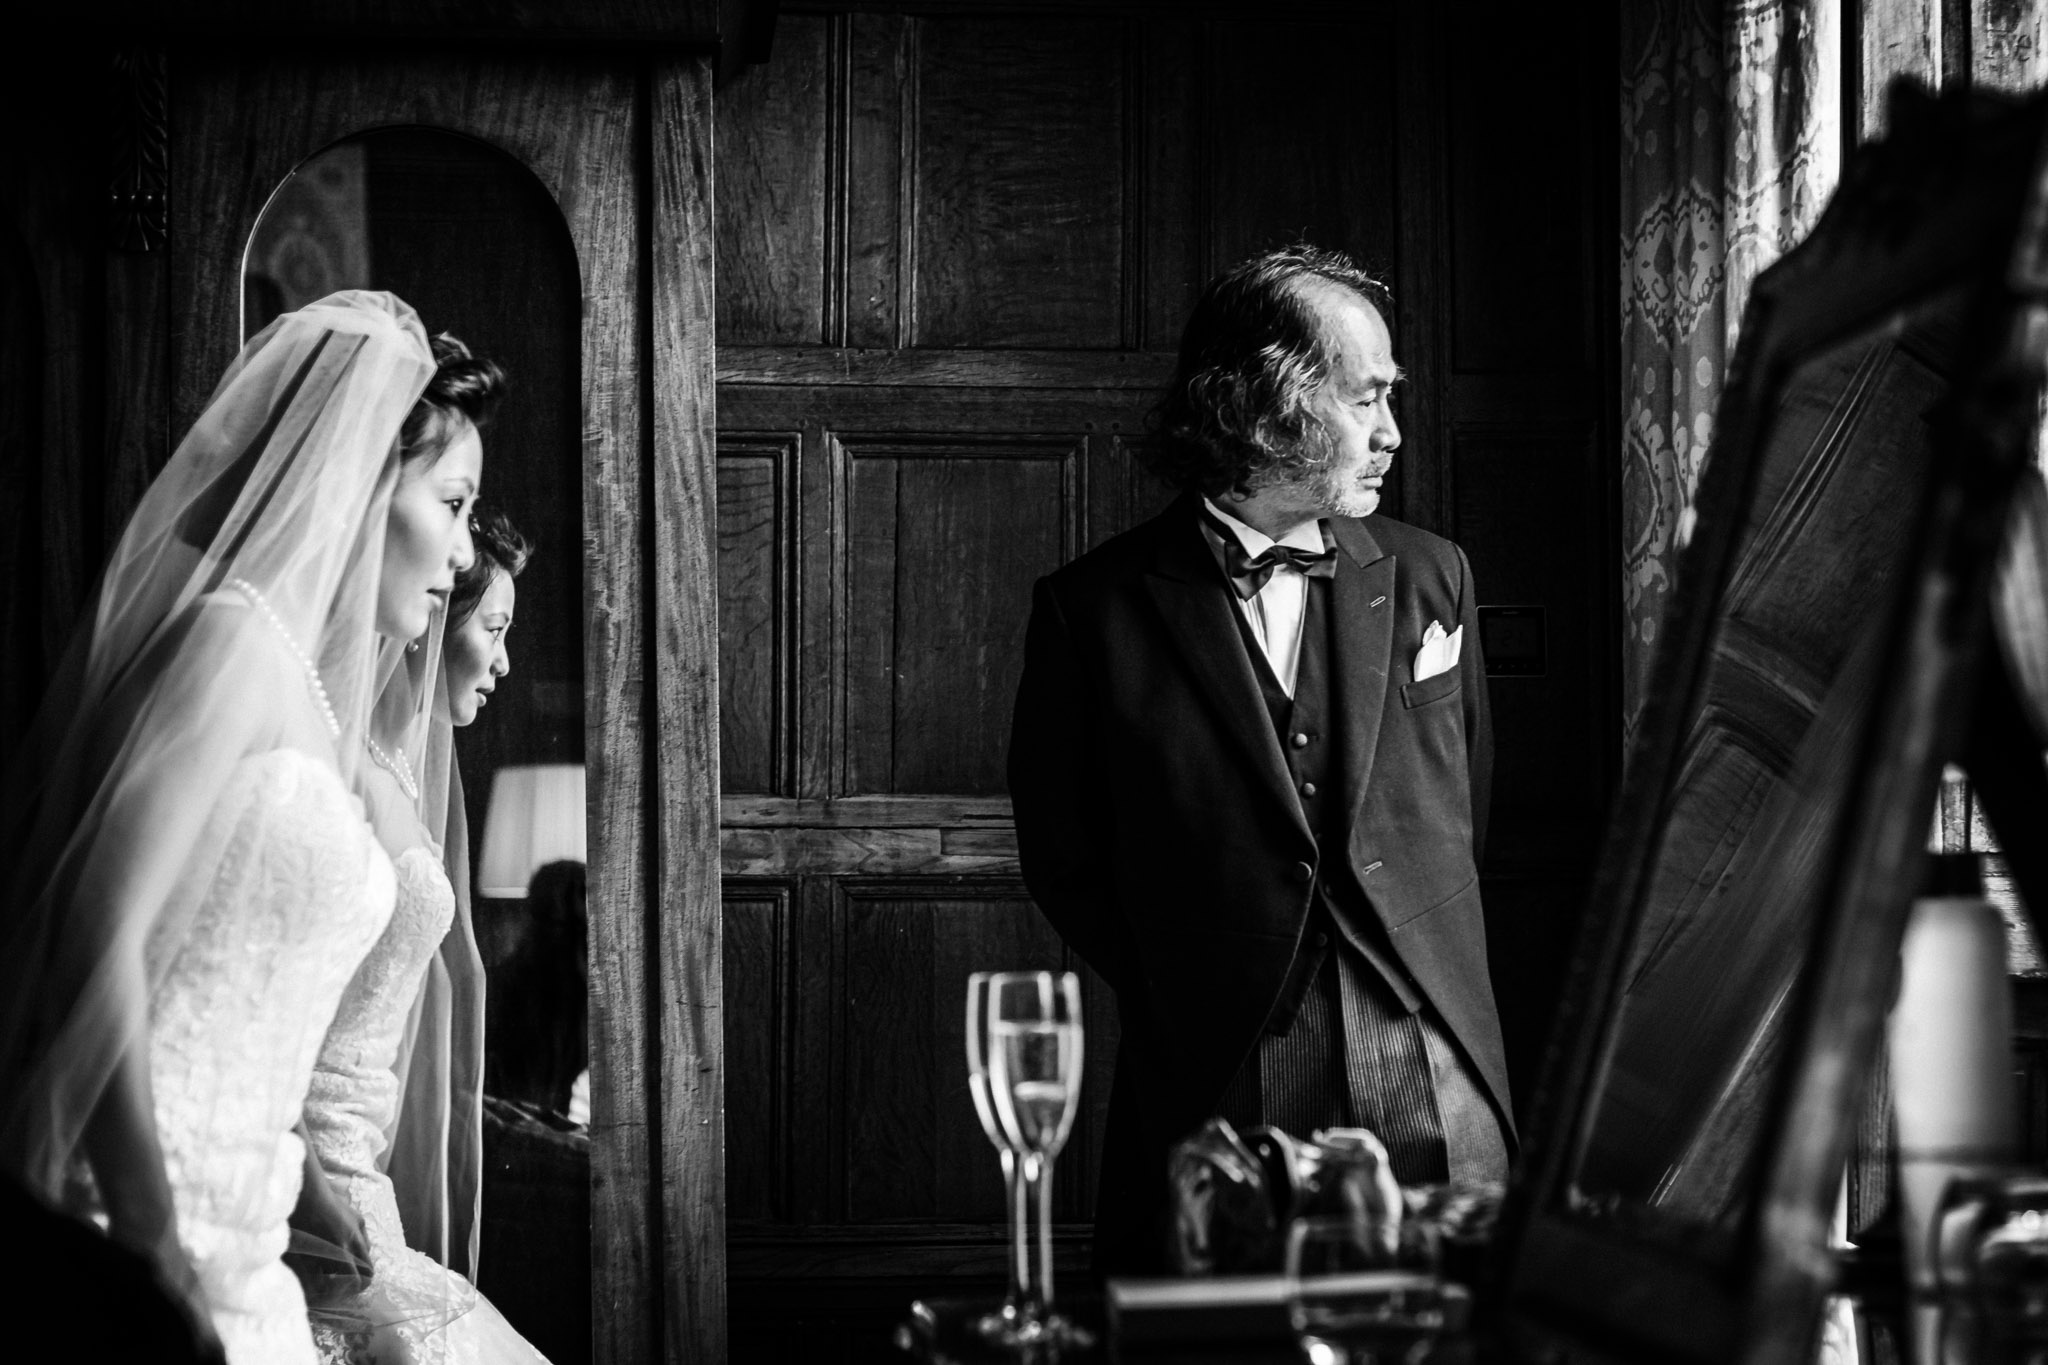 Bride and father await the groom's arrival - photo by Andrew Billington Photography